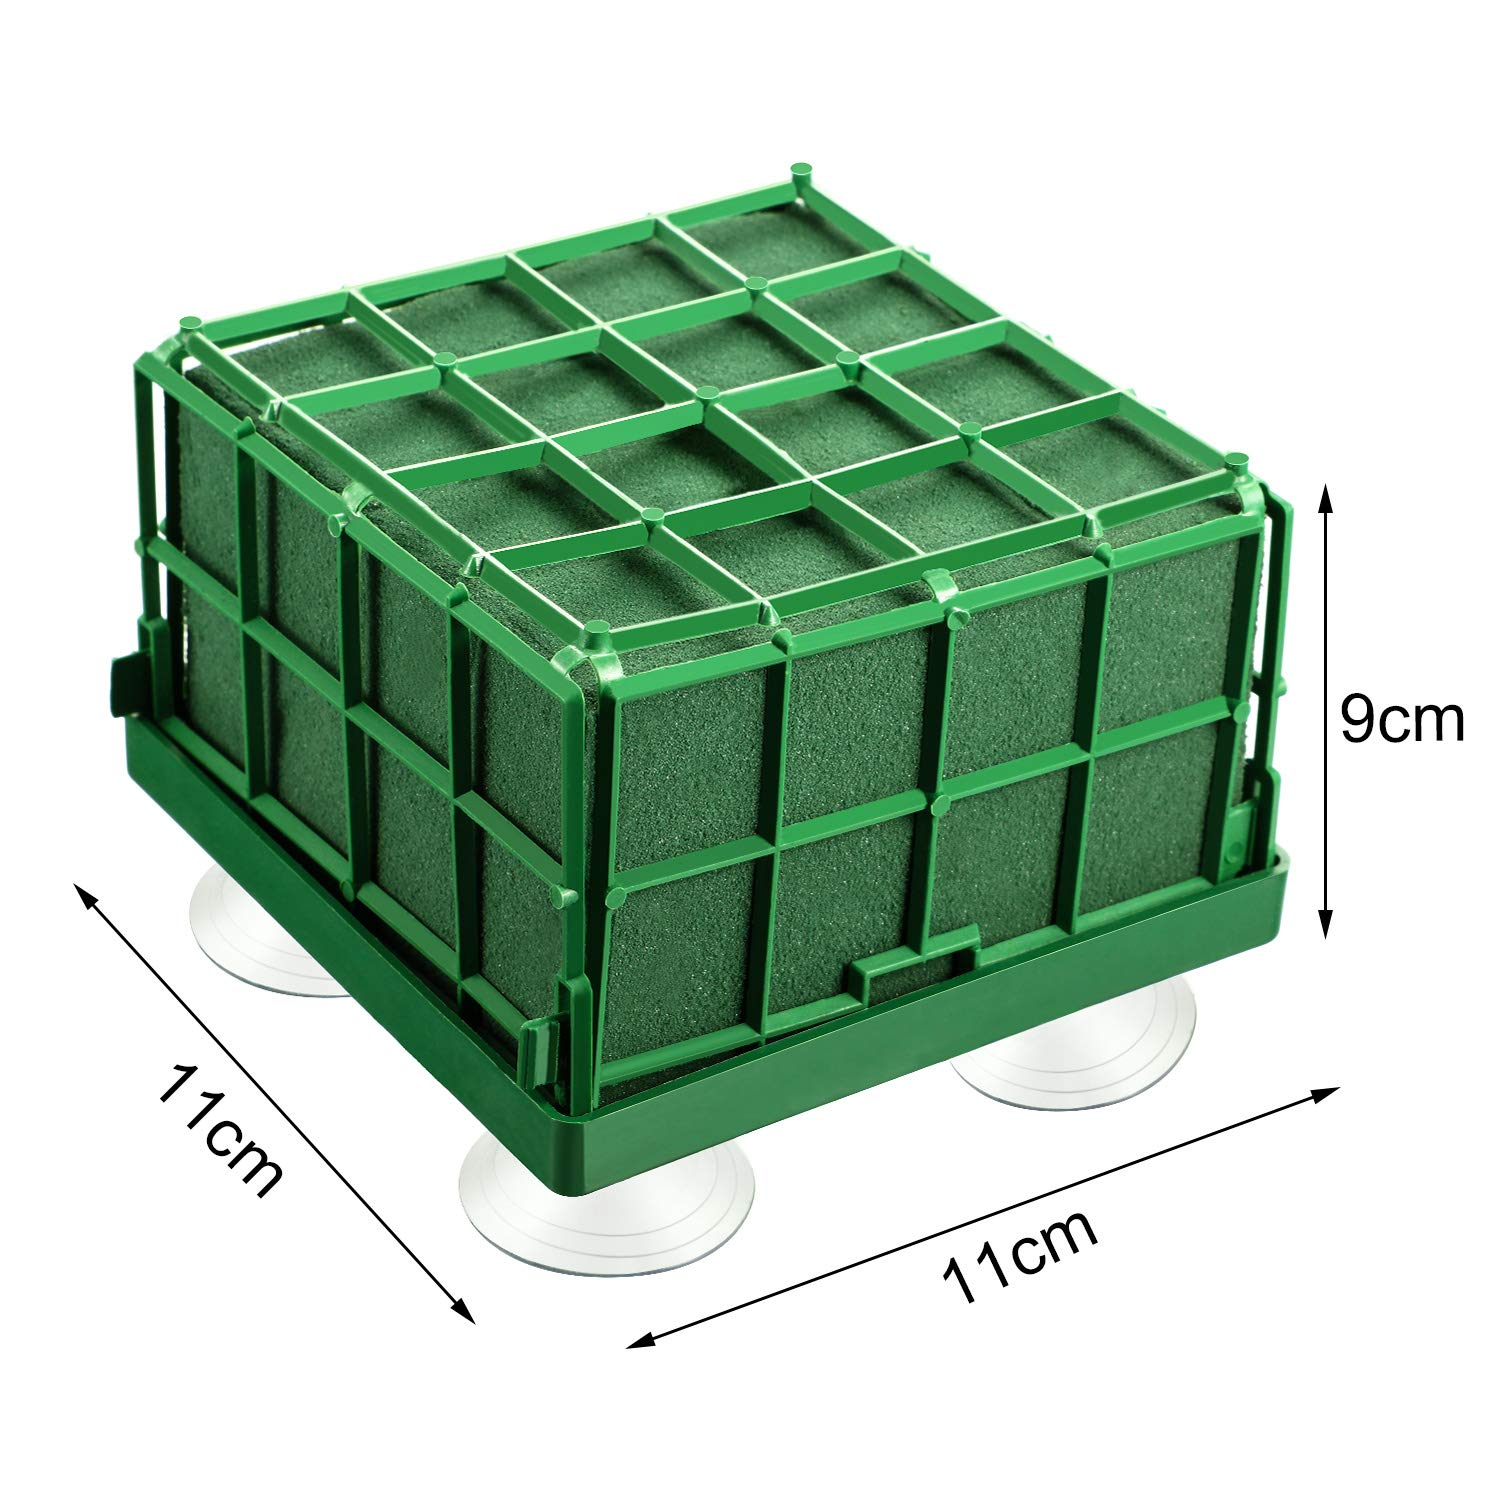 11 x 11 x 9 cm// 4.3 x 4.3 x 3.5 Inch Square Floral Foam Grande Cage Grande Flower Holder with Floral Foam for Fresh Flowers Cage Pack of 2